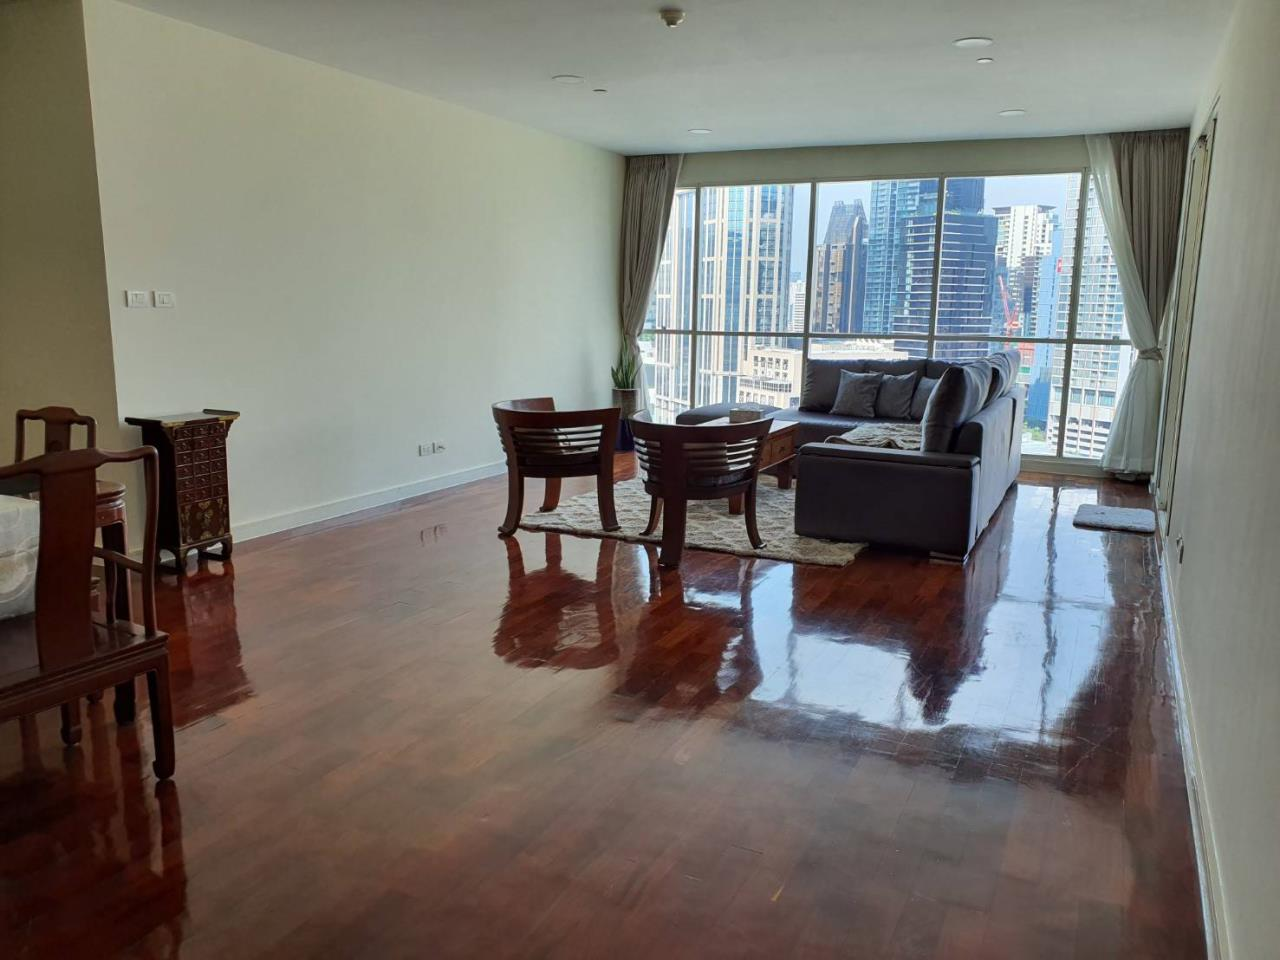 Bestbkkcondos Agency's Wilshire Condo Sukhumvit 22 - 140 SQ.M - for rent: 70,000 THB - 2 bedrooms, 2 bathrooms 19